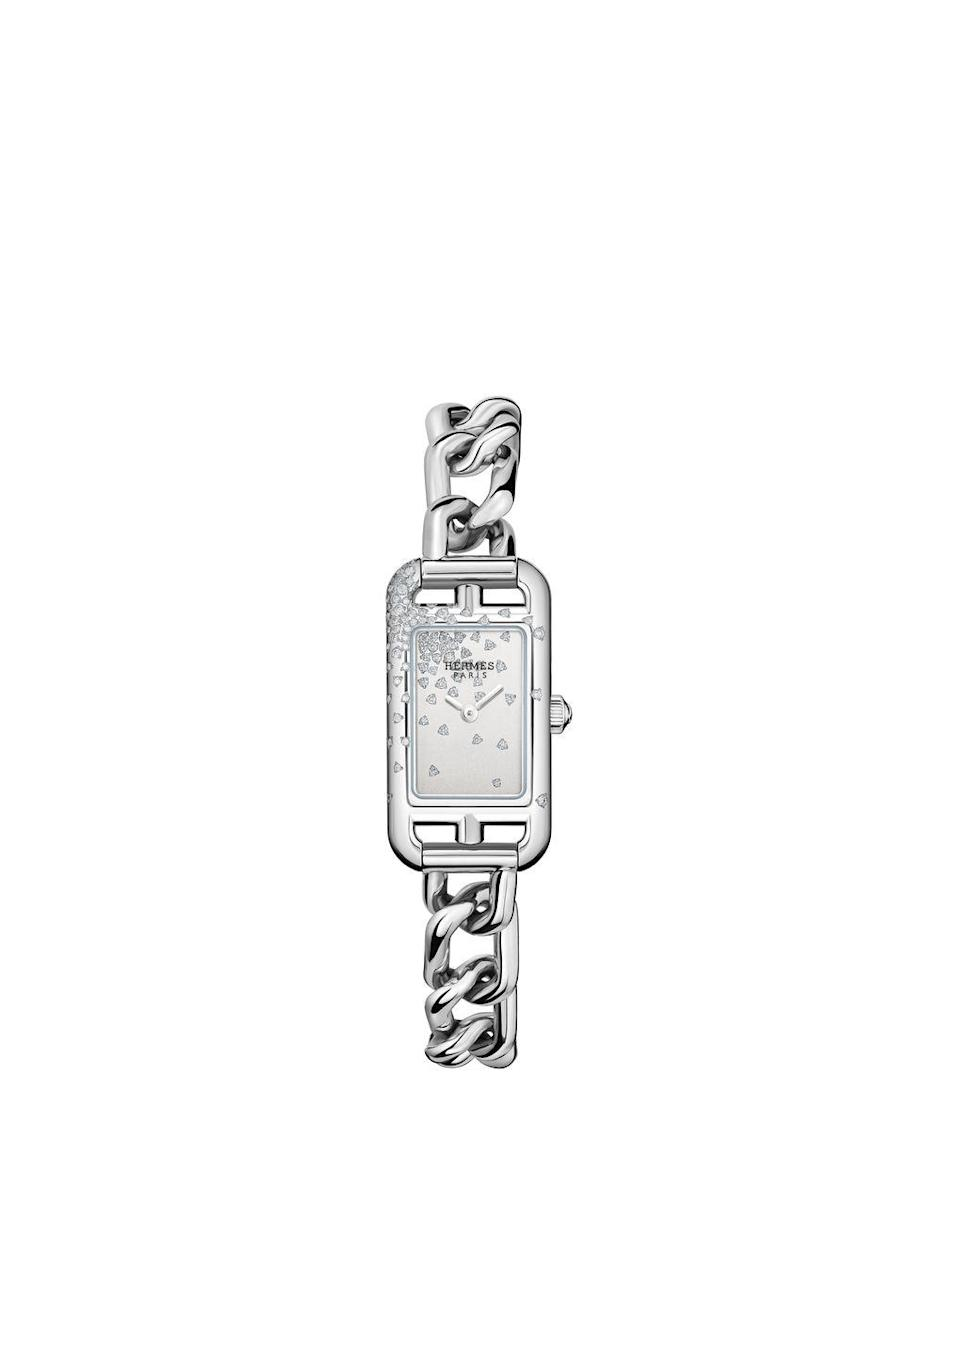 "<p><a class=""link rapid-noclick-resp"" href=""https://www.hermes.com/uk/en/product/nantucket-watch-17-x-23mm-W049591WW00/"" rel=""nofollow noopener"" target=""_blank"" data-ylk=""slk:SHOP NOW"">SHOP NOW</a></p><p>With a handsome face that resembles a 'square within a square', plus a bracelet made of chunky chain links, it's easy to see why the Hermès Nantucket watch has been considered a design classic for 30 years. The newest version is accented with a sprinkle of white diamonds, for a fashion-forward finish. </p><p>Nantucket steel watch, £5,550, <a href=""https://www.hermes.com/uk/en/product/nantucket-watch-17-x-23mm-W049591WW00/"" rel=""nofollow noopener"" target=""_blank"" data-ylk=""slk:Hermès"" class=""link rapid-noclick-resp"">Hermès</a></p>"